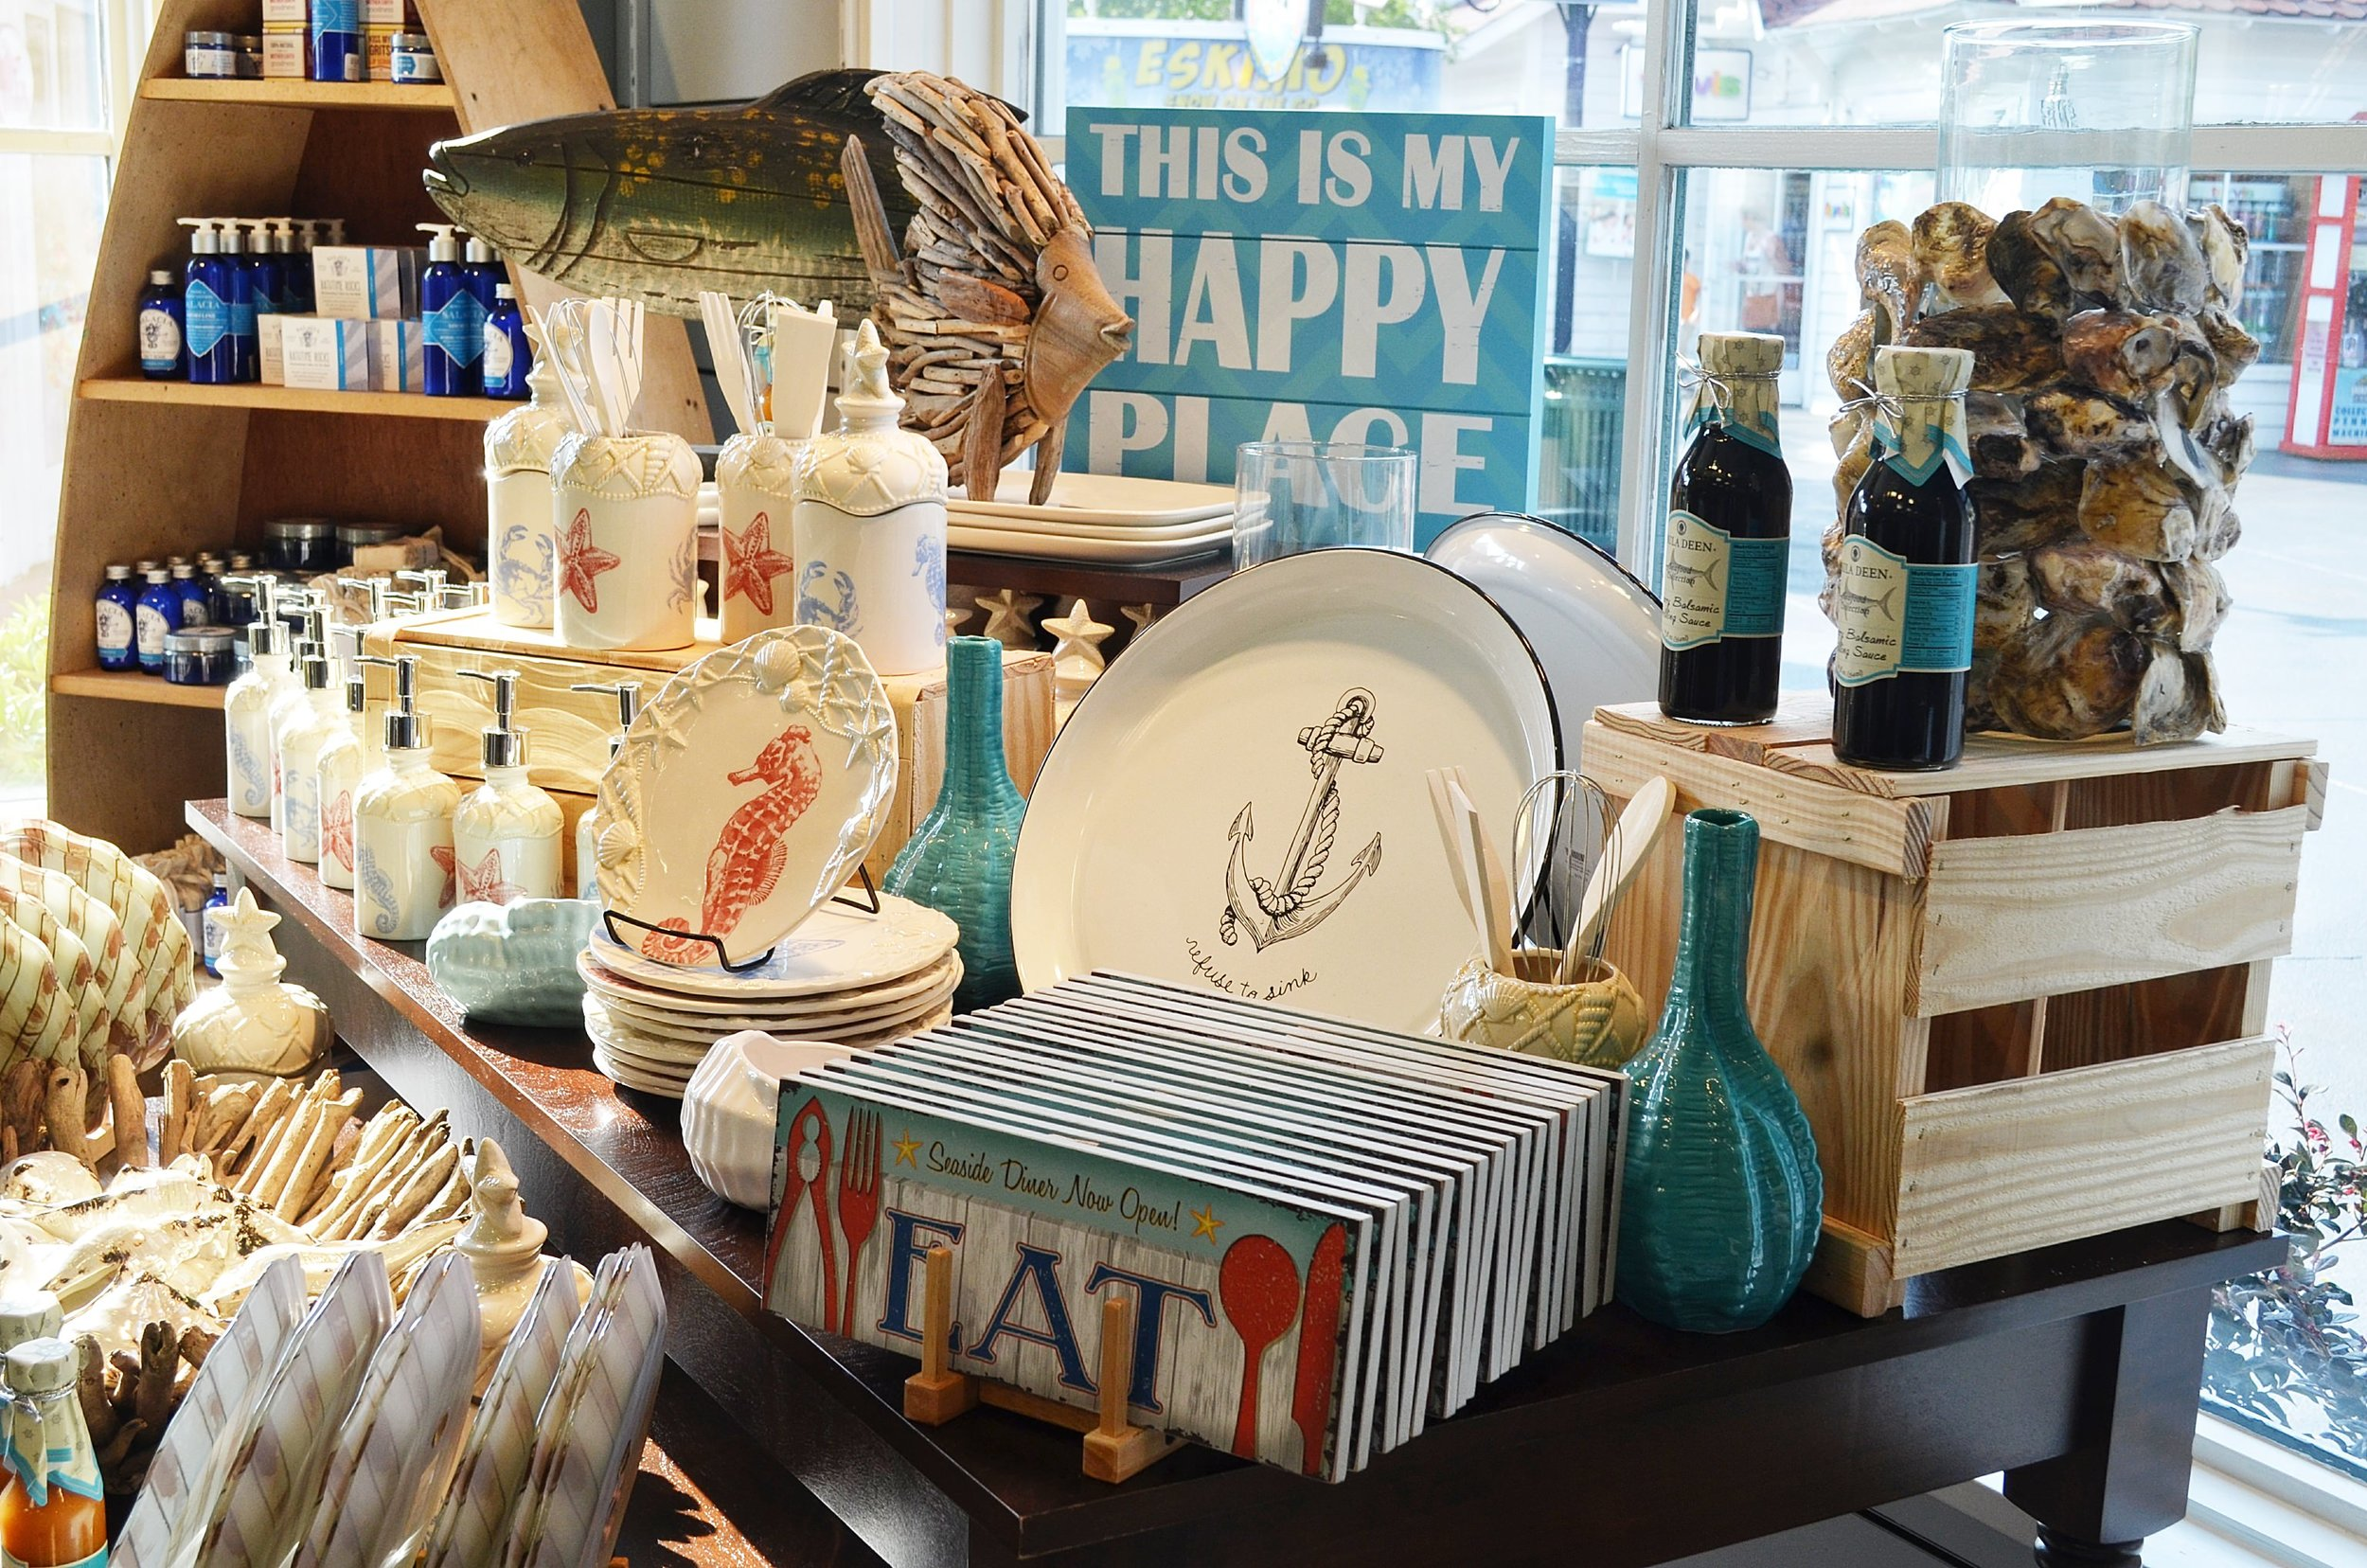 happy place store.jpg